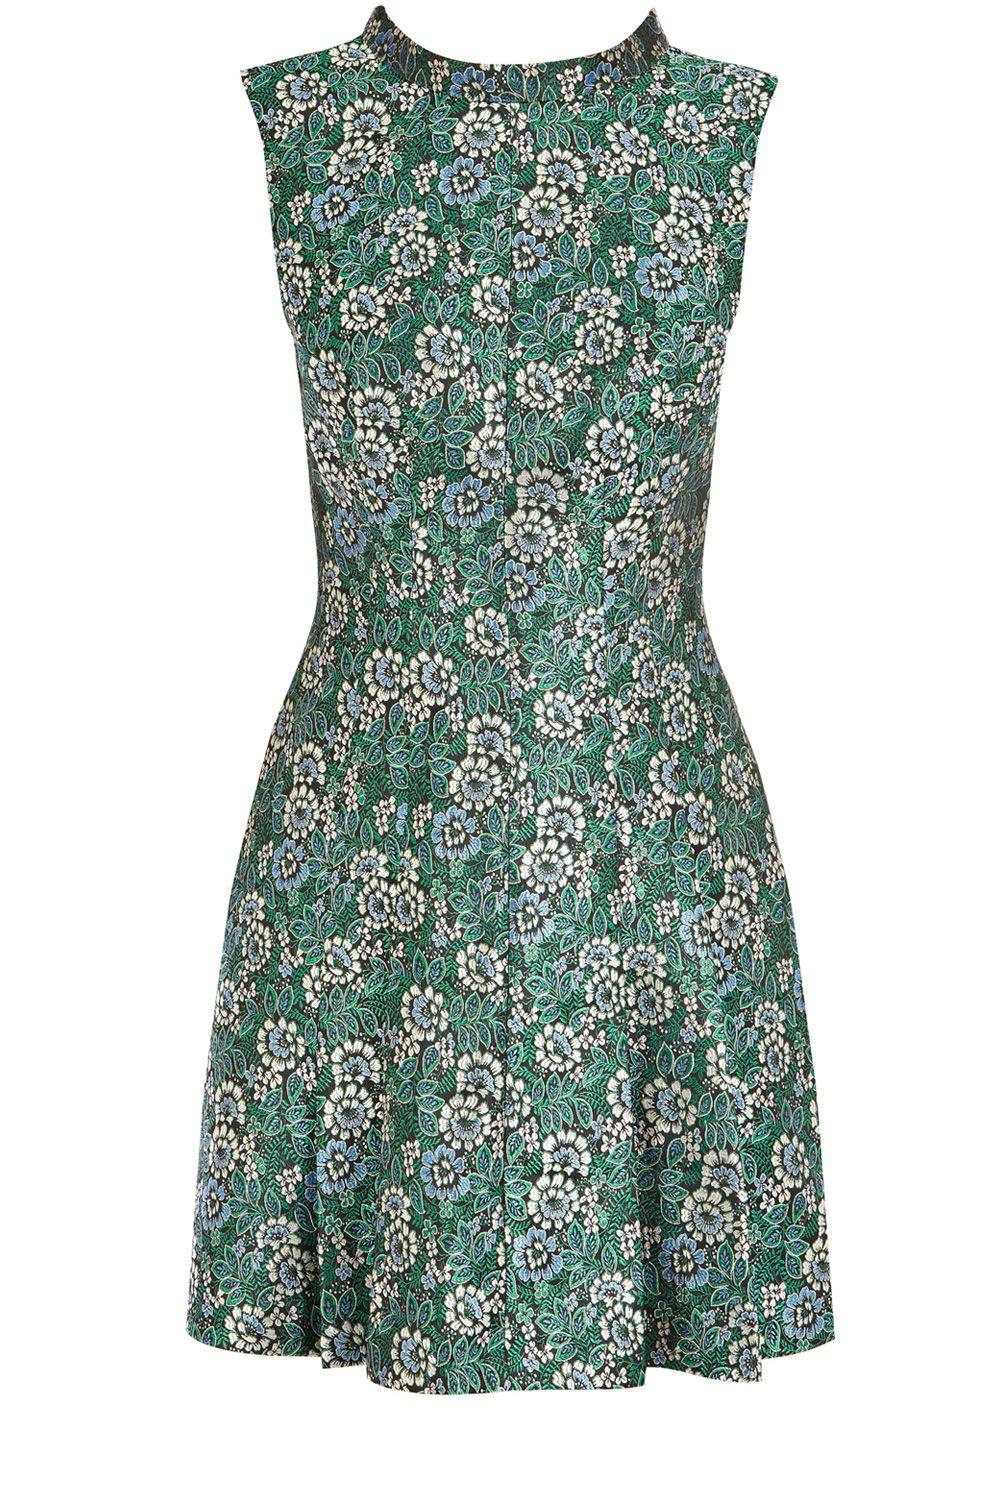 We heart the Oriental Jacquard finish to this Oasis dress #theperfectpresent